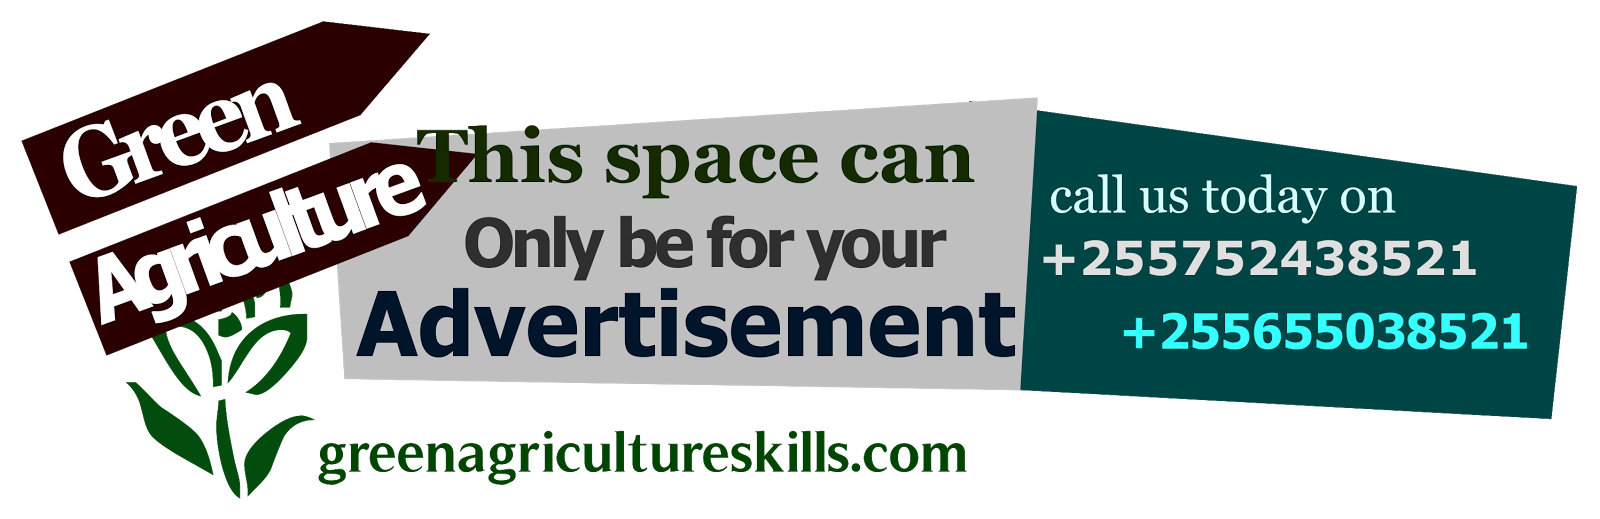 ADVERTISE WITH GREEN AGRICULTURE HERE